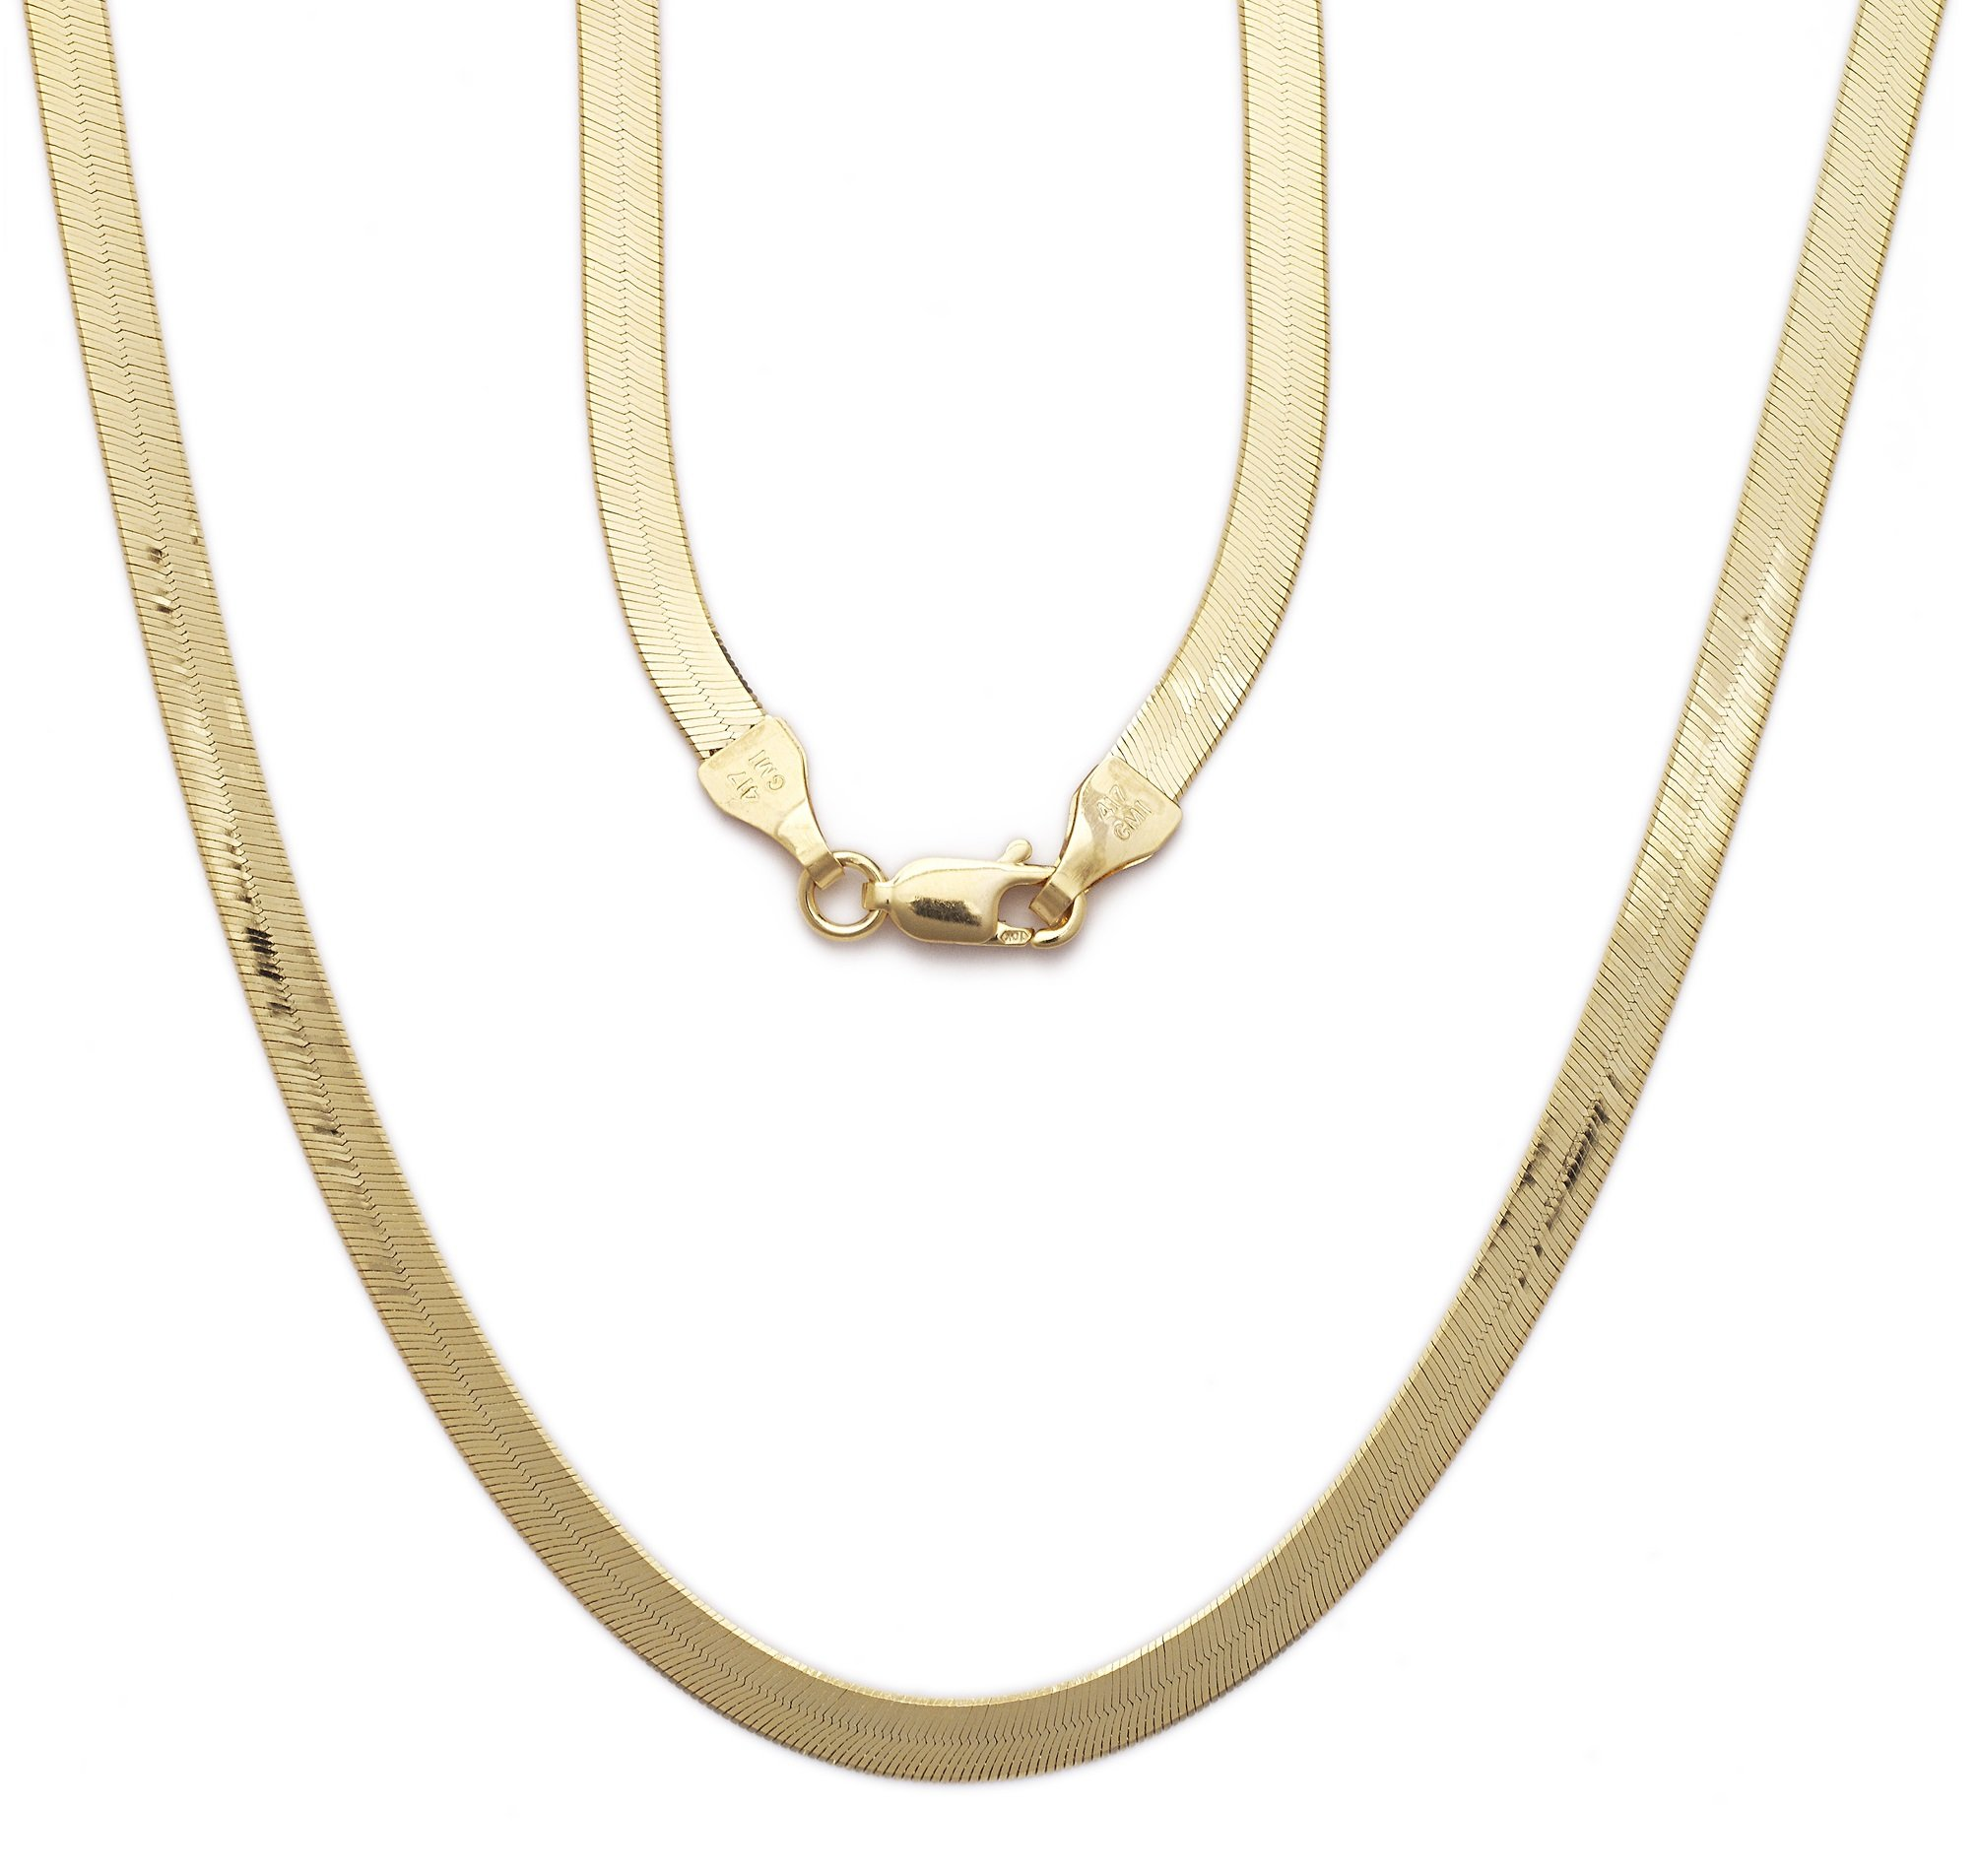 "Floreo 22 Inch 10k Yellow Gold Super Flexible Silky Herringbone Chain Necklace, 0.2"" (5mm)"